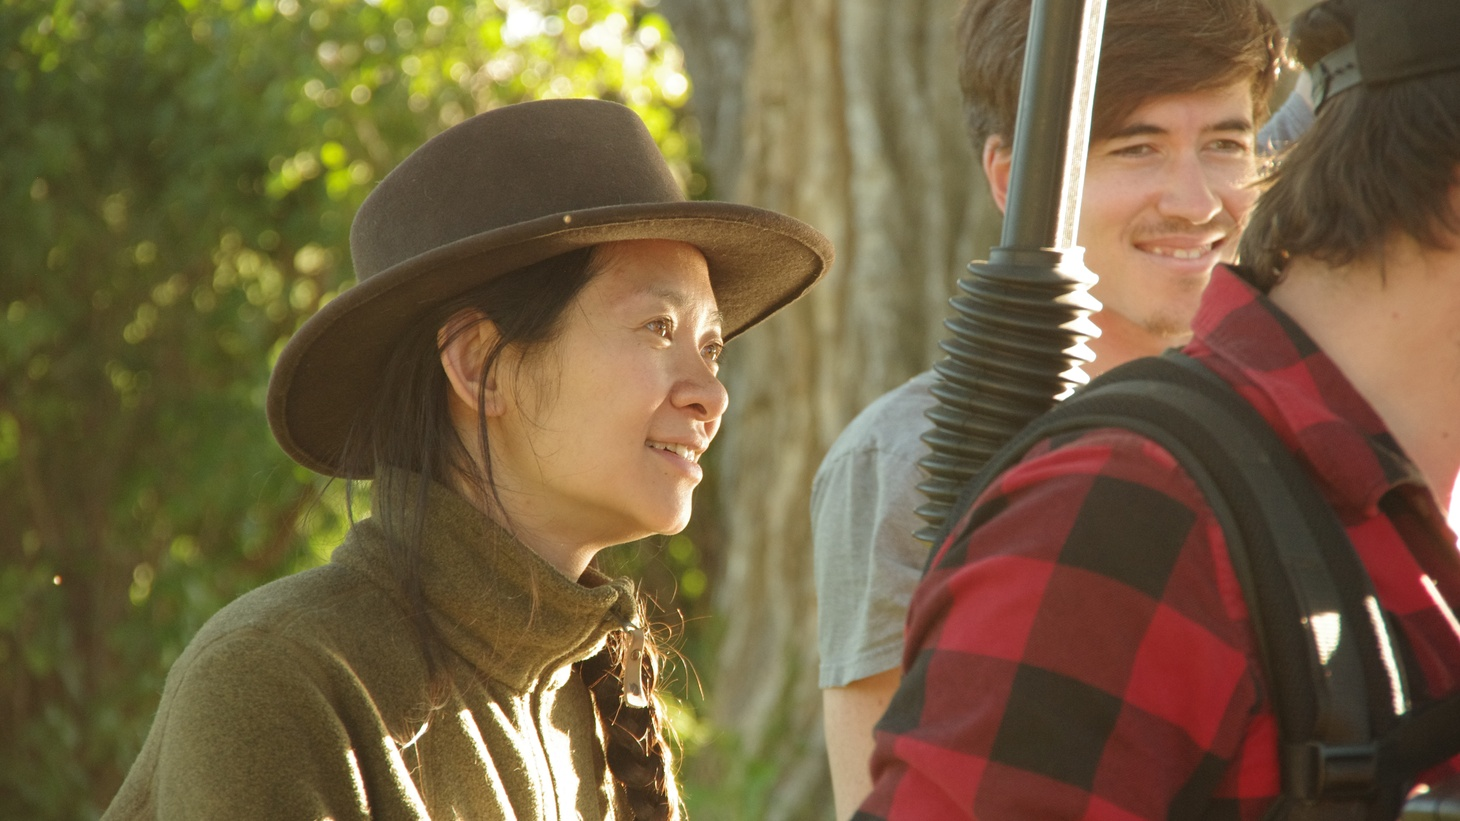 When director Chloé Zhao met horse trainer Brady Jandreau on the Pine Ridge Indian Reservation, she knew she wanted to put him in her next project.